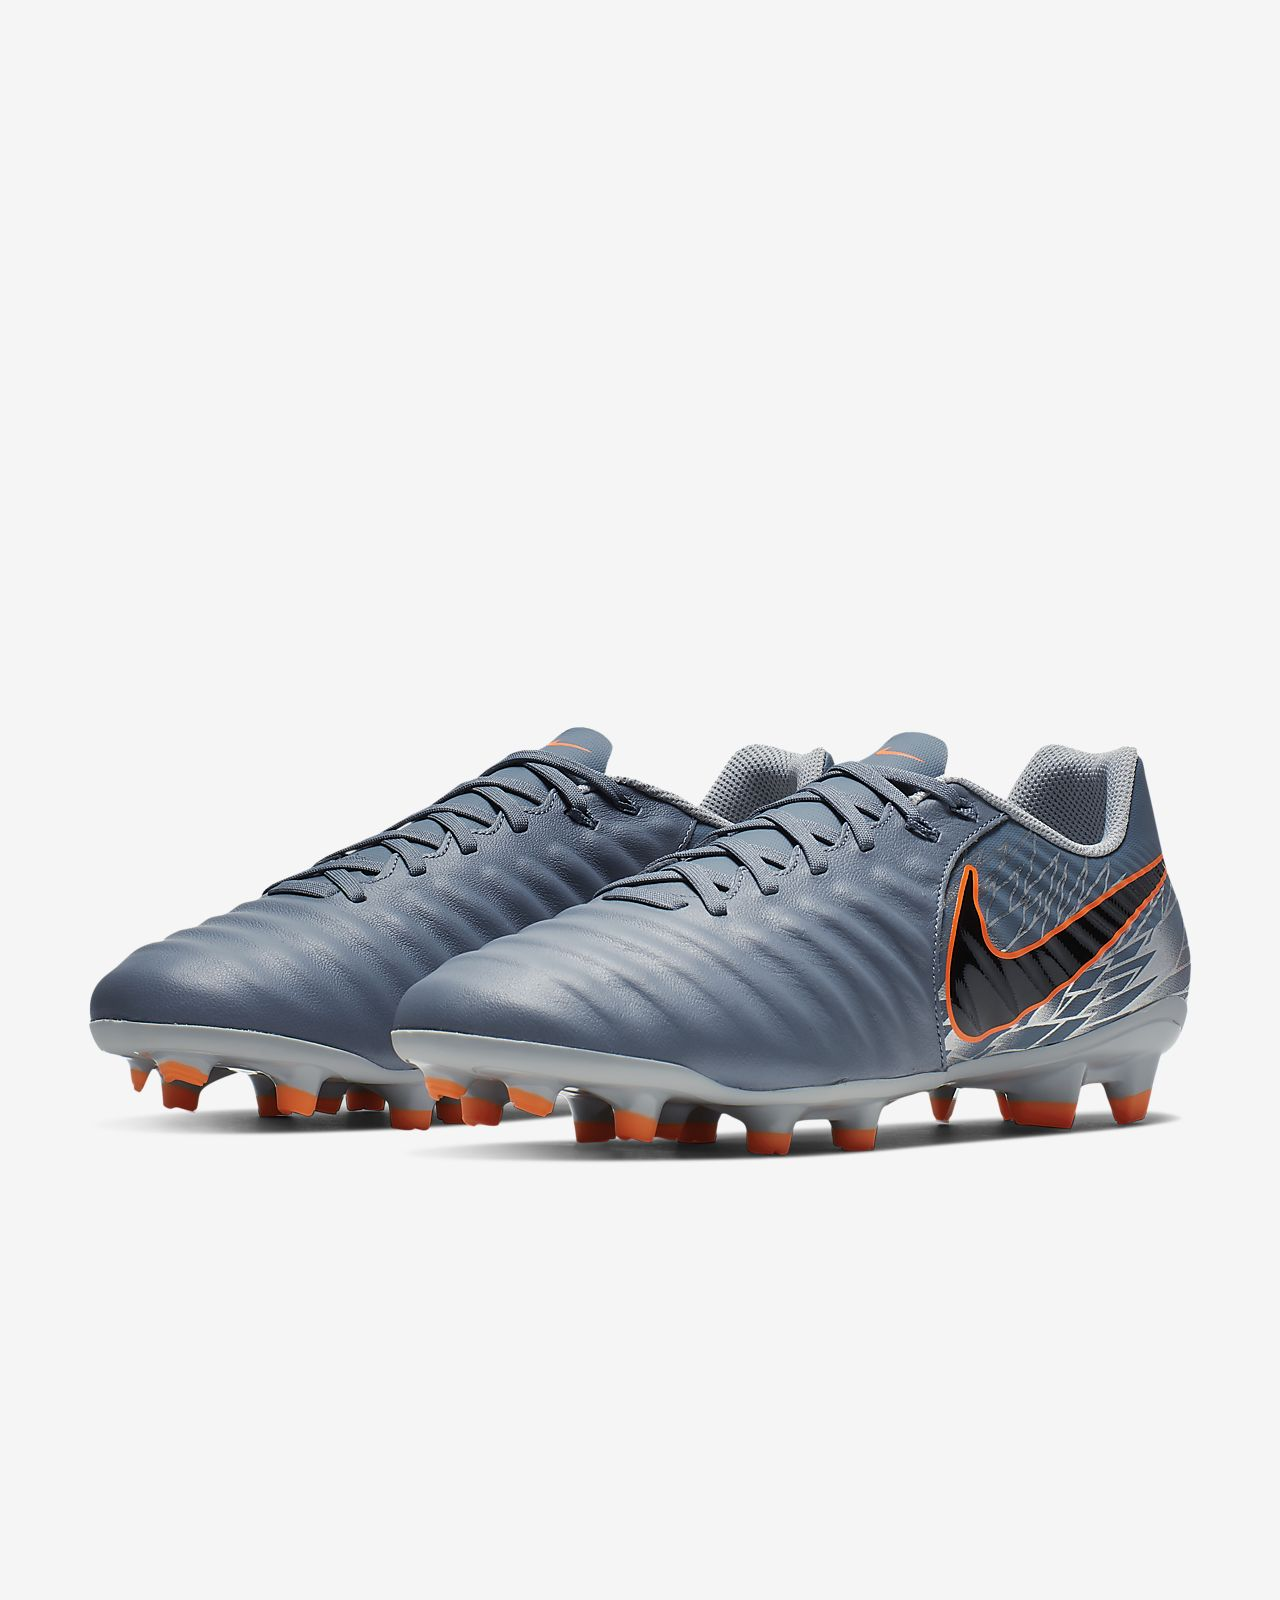 the best attitude 498ef 2a142 ... Nike Tiempo Legend VII Academy Firm-Ground Soccer Cleat